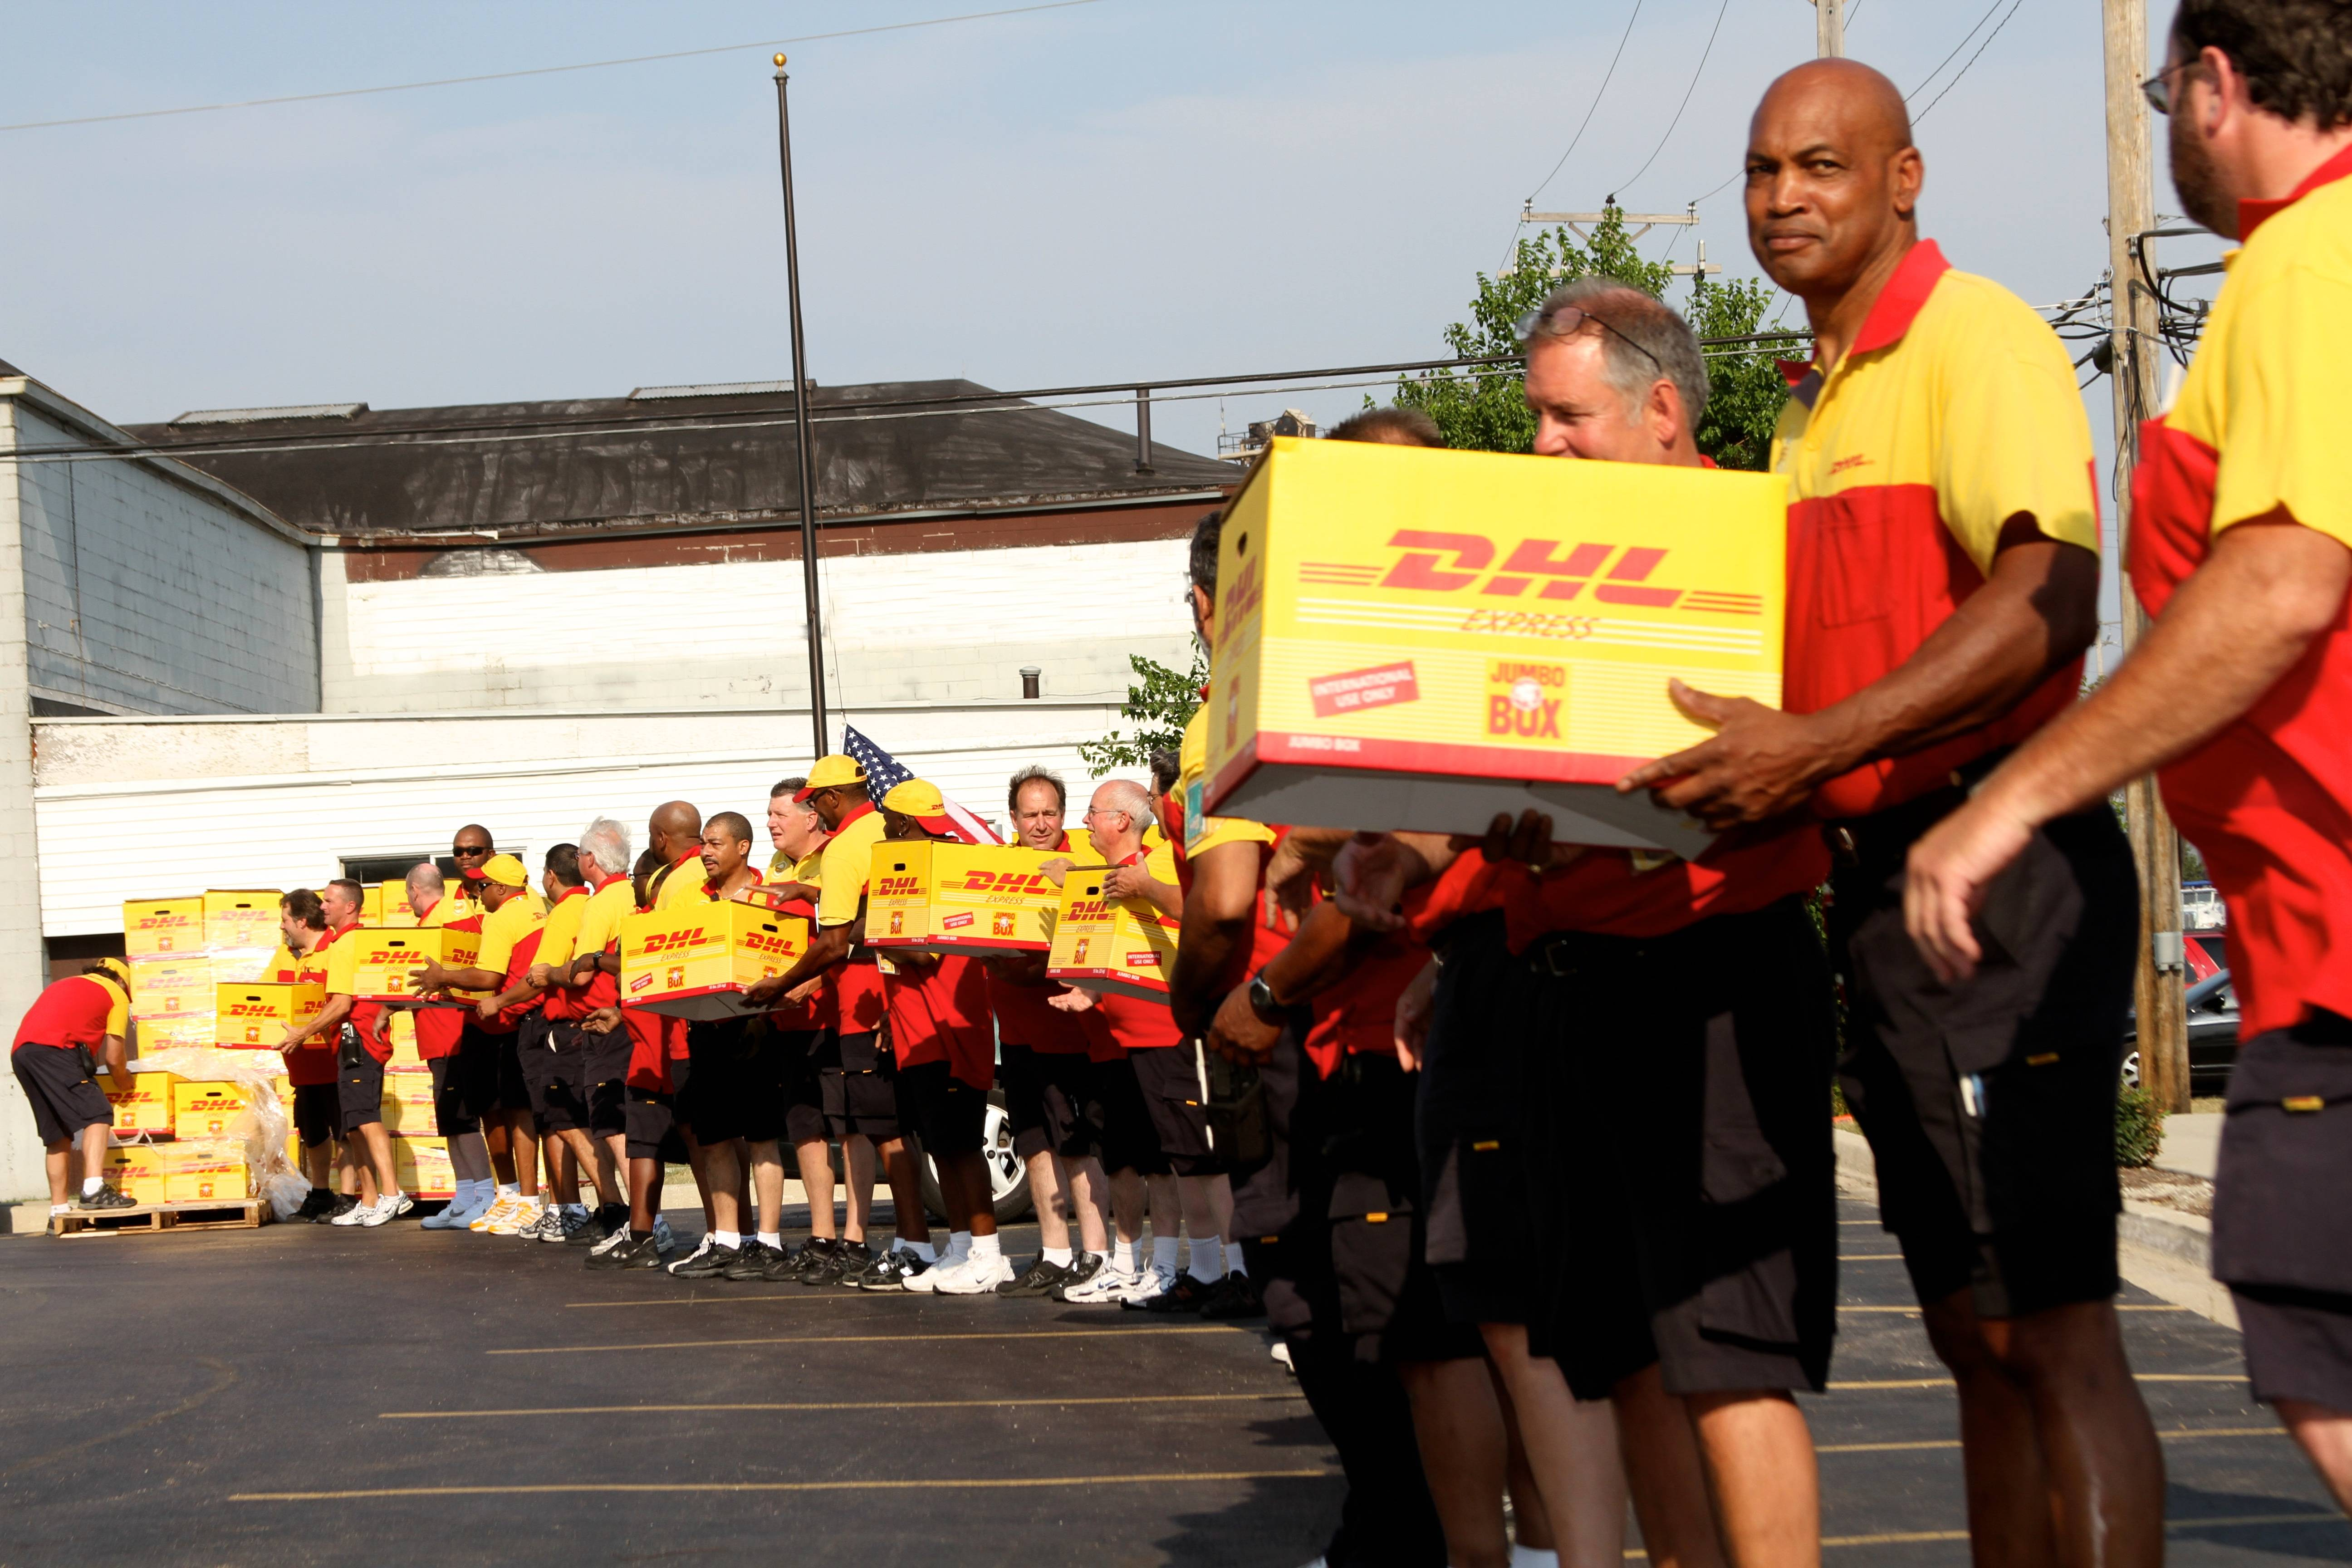 DHL Express is donating the resources of its global express shipping network to send enough pizza to feed every U.S. soldier stationed in the country.